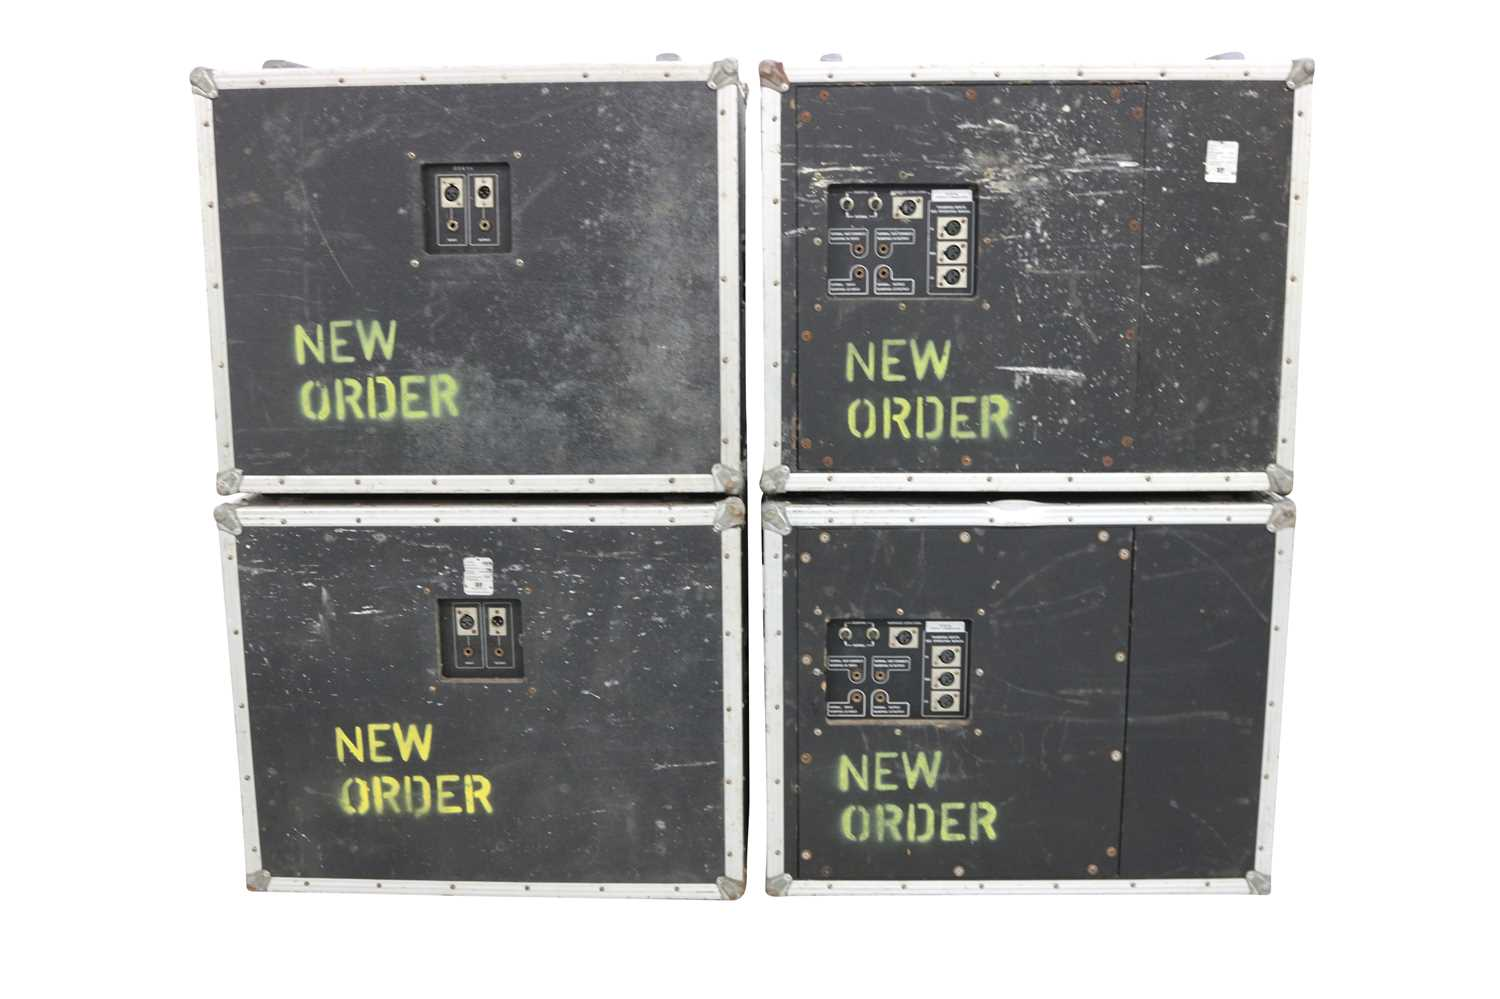 NEW ORDER BASS SPEAKERS FLIGHT CASES x5 - Image 5 of 7